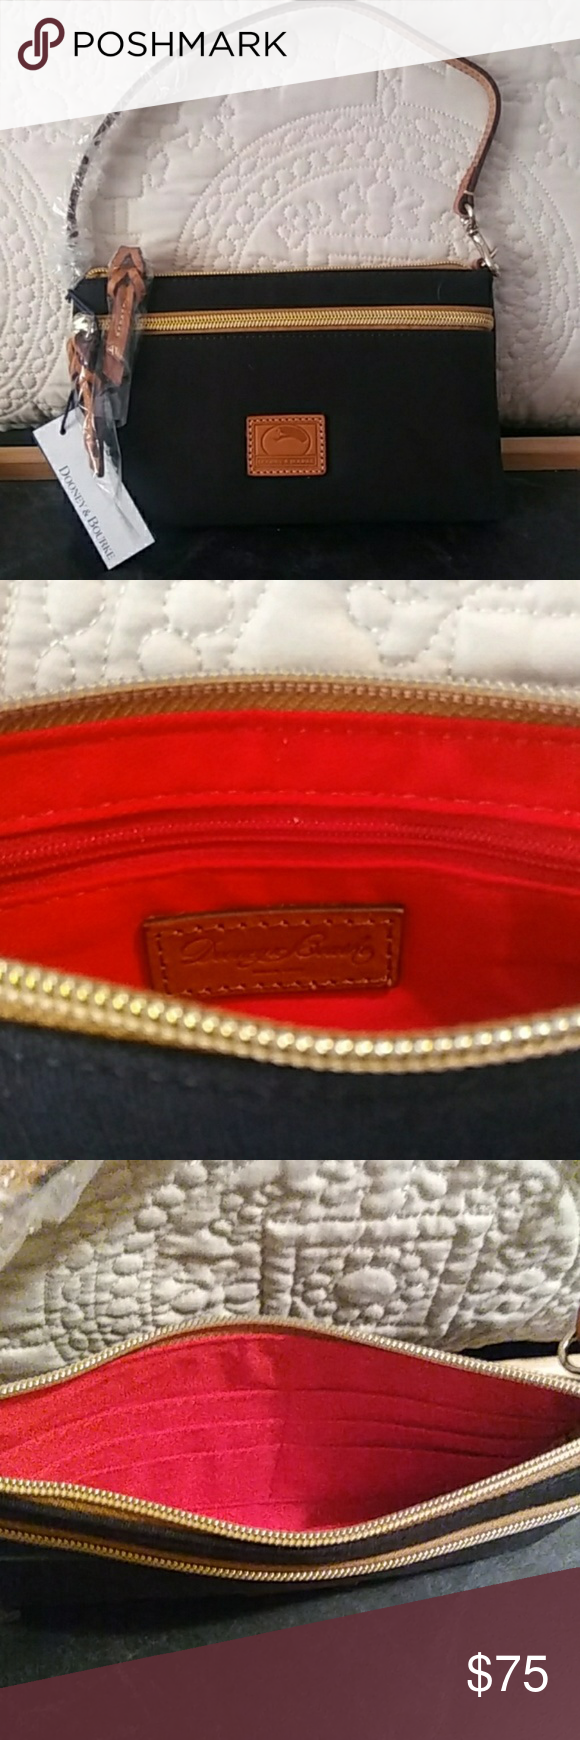 Dooney & Bourke Arm Bag/Clutch NWT !  Dooney & Bourke Small Arm Bag/Clutch Black Fabric with Gold Hardware & Tan Leather Accents Red Fabric Inside 7 Strap Drop, 9W x 6H  Zipper Top with Front Zipper Pocket  Inside-Zipper Pocket & 6 Card Slots Dooney & Bourke Bags Clutches & Wristlets #zippertop